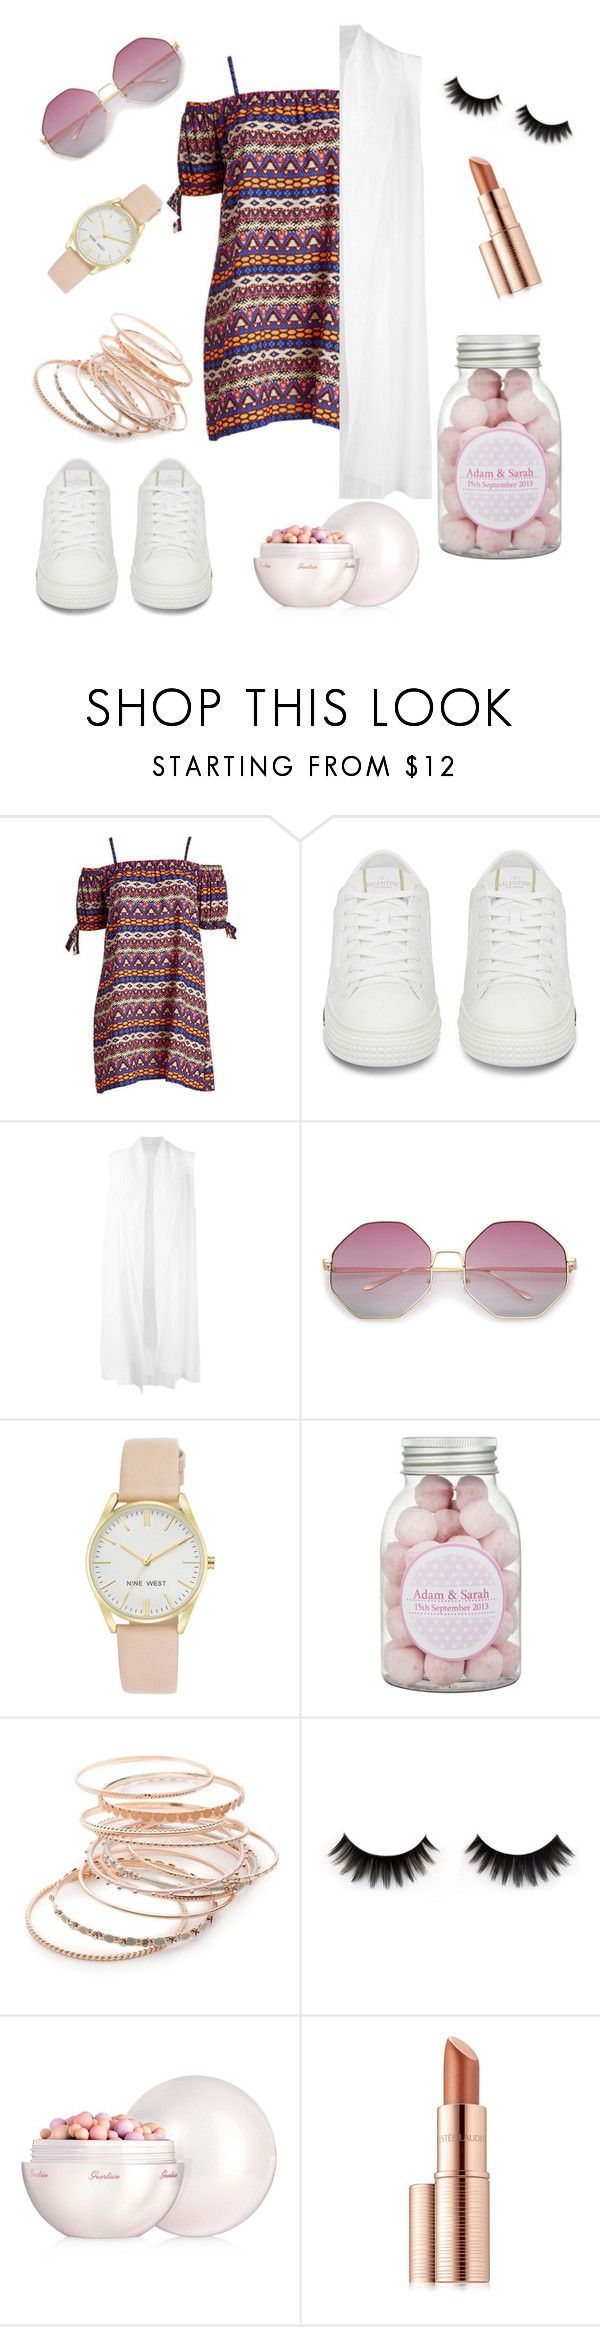 """Untitled #32"" by ssollocaty ❤ liked on Polyvore featuring demoo parkchoonmoo, Nine West, Red Camel, Guerlain, Estée Lauder and plus size dresses"